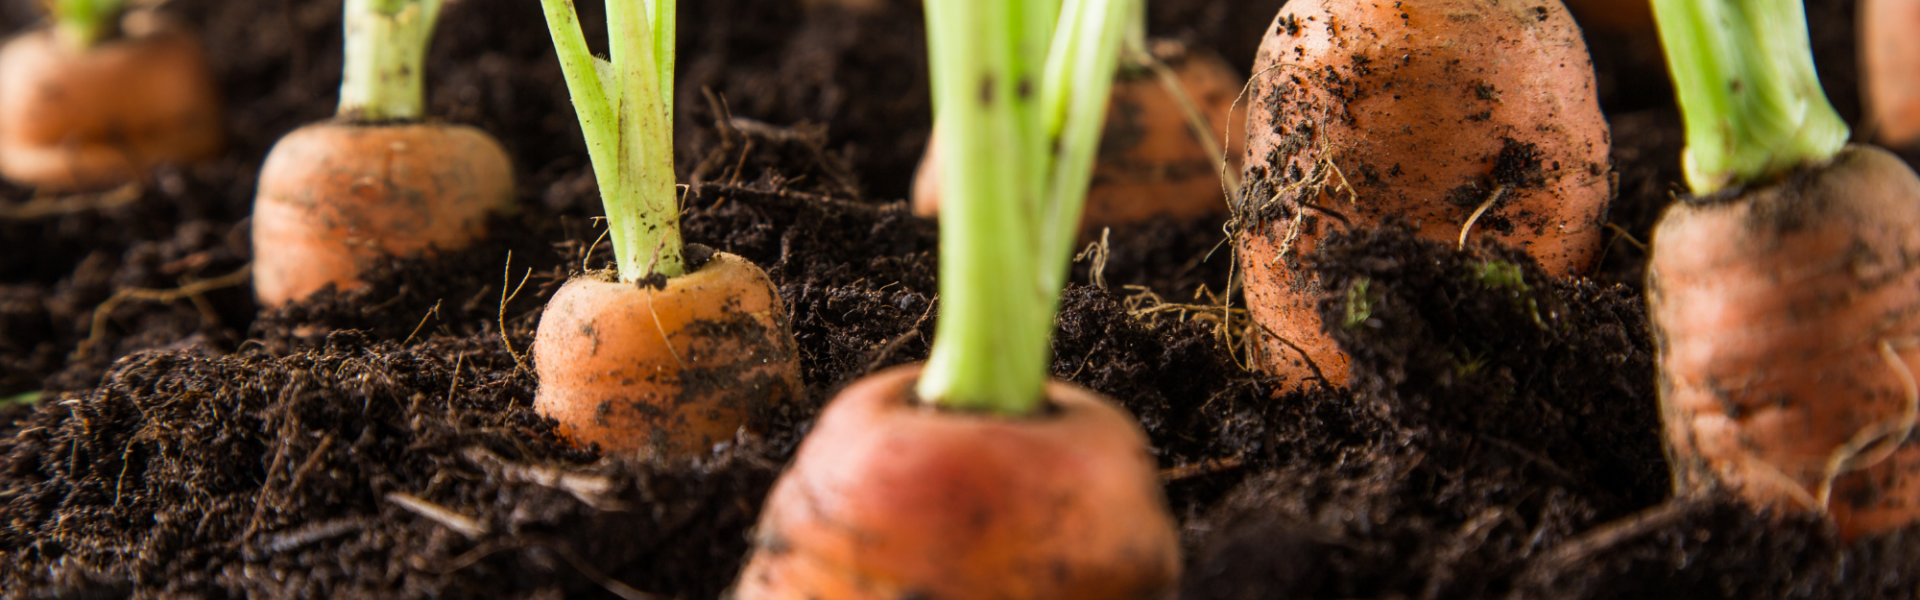 carrots popping out of soil on a farm